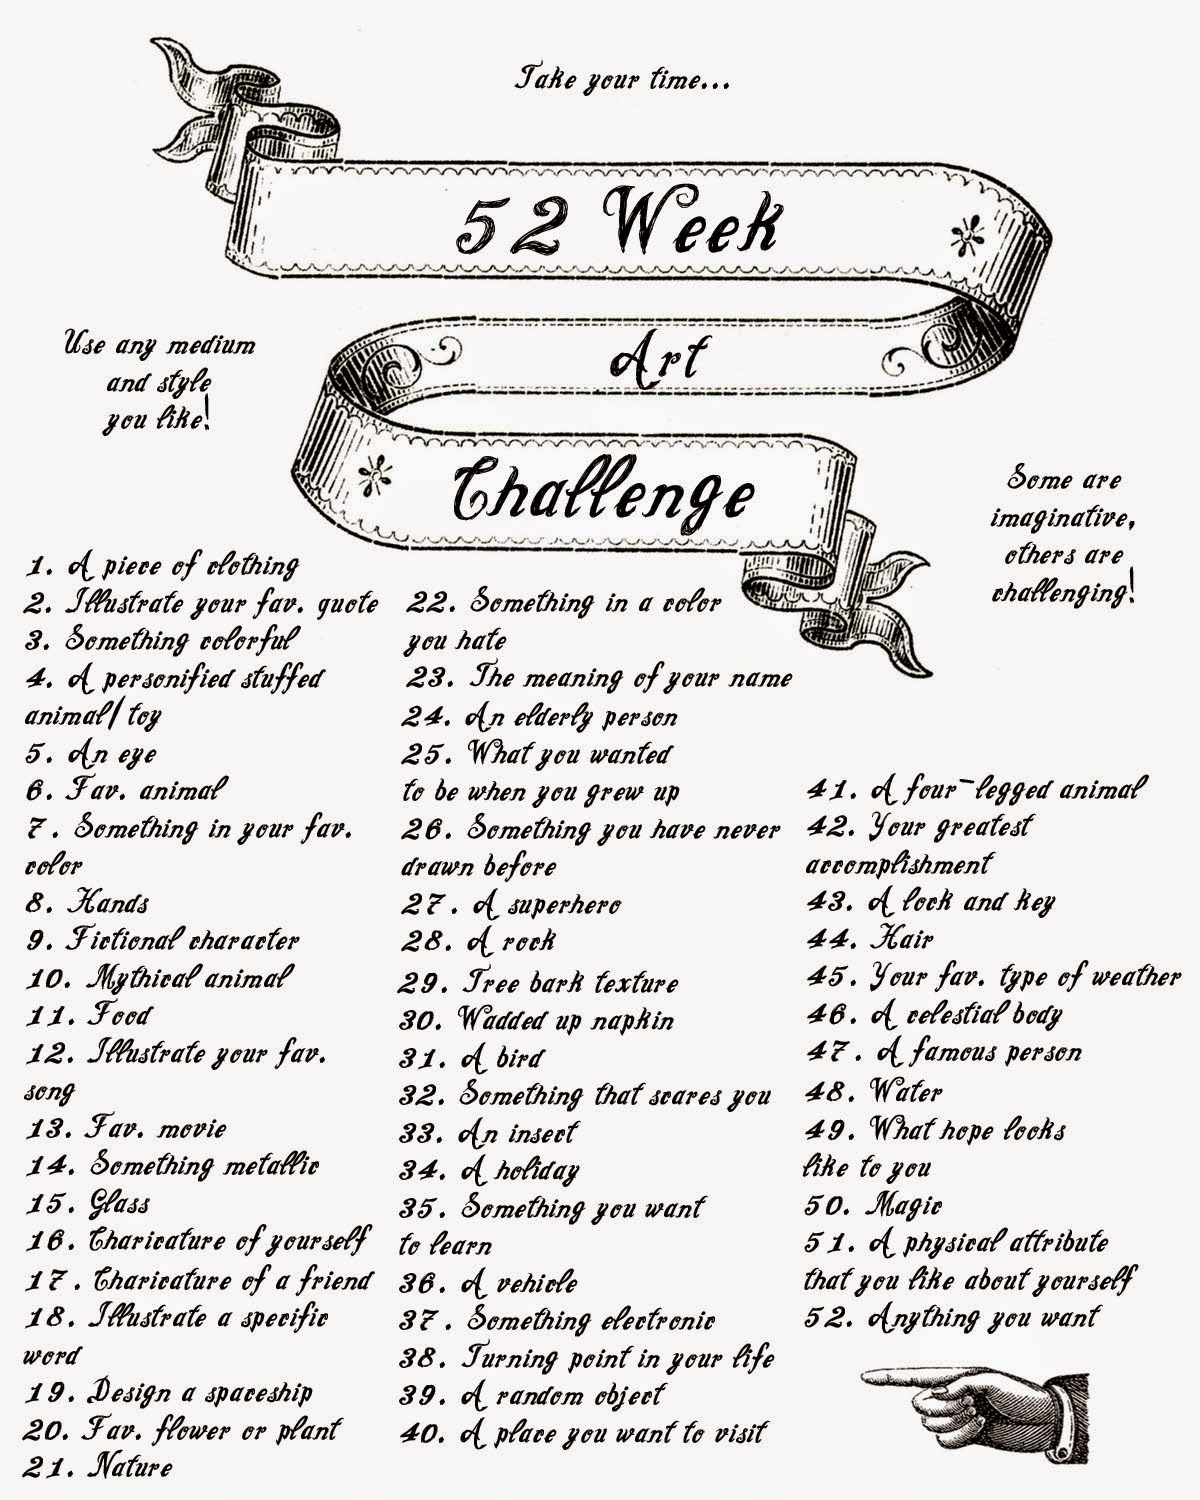 This is a picture of Witty Weekly Drawing Challenge